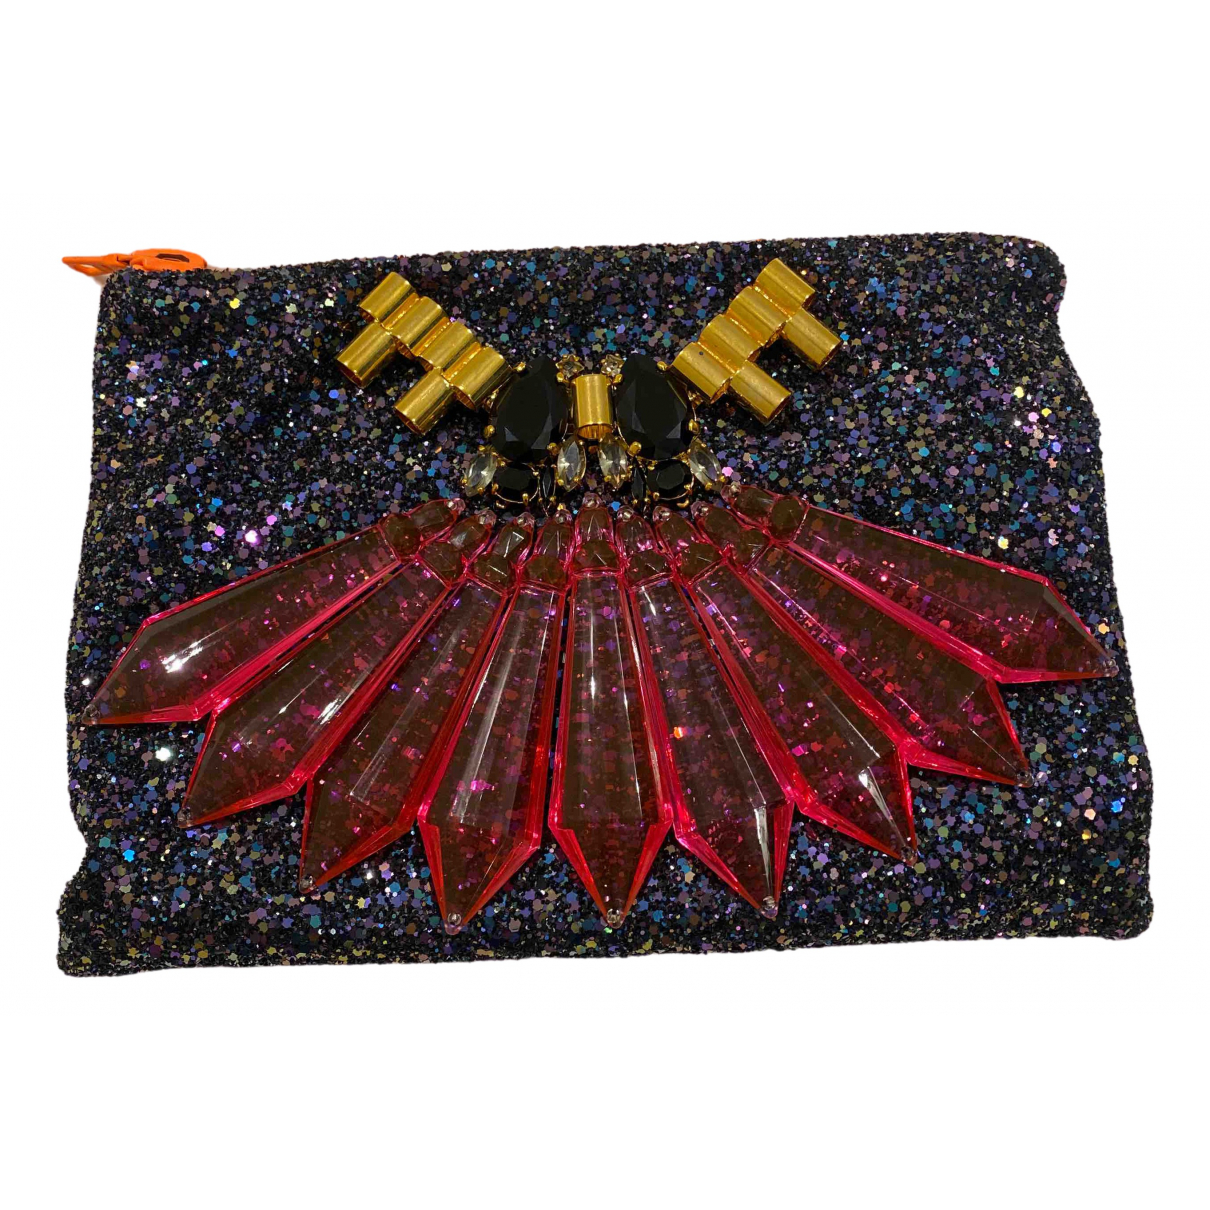 Mawi \N Clutch in  Bunt Mit Pailletten